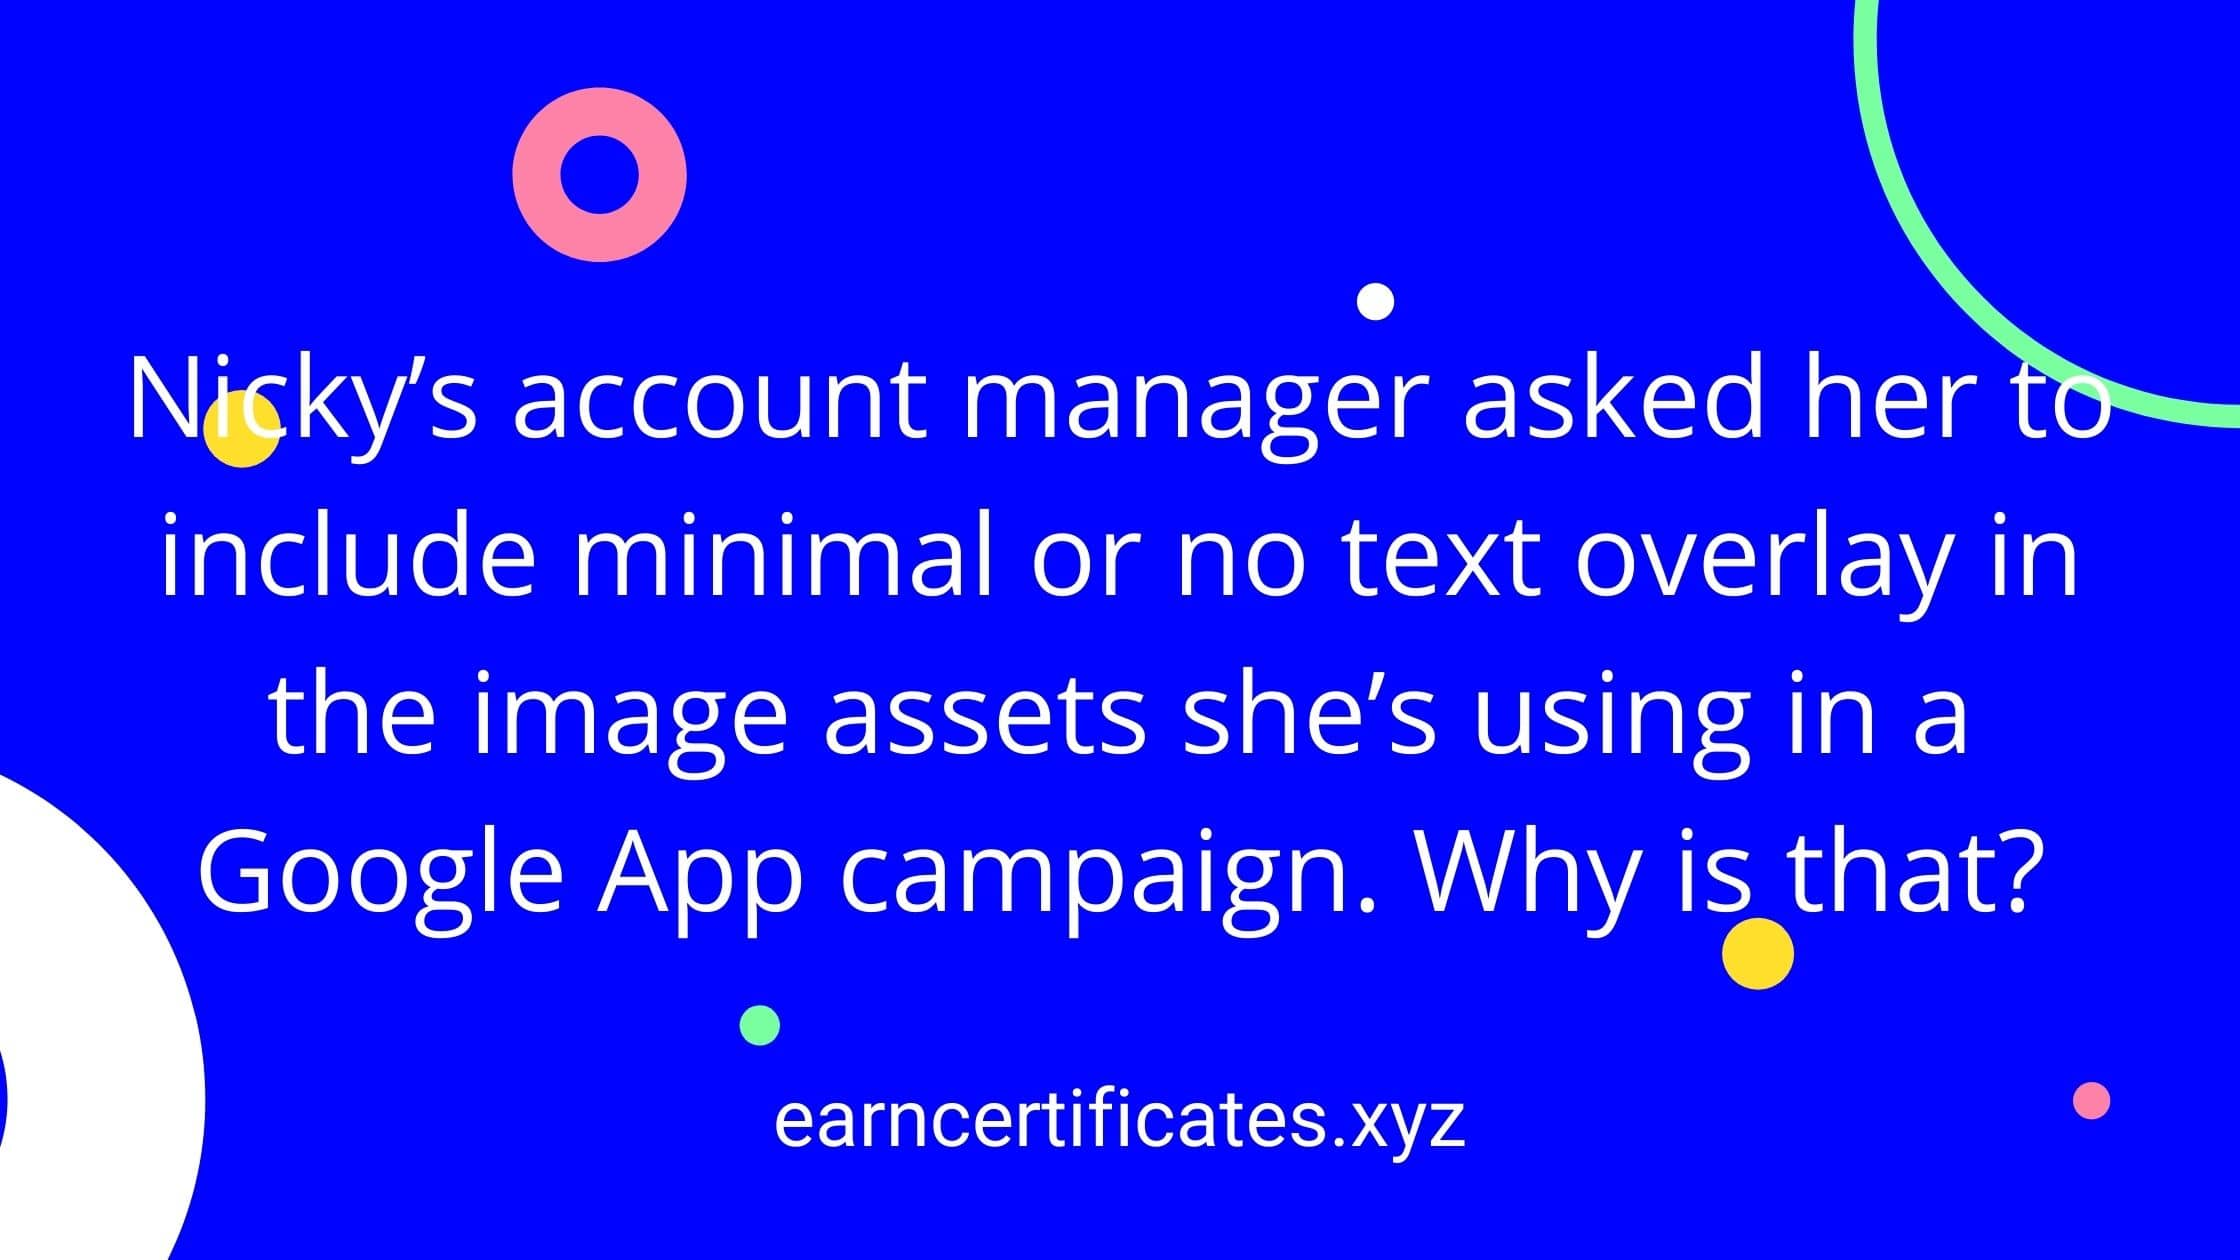 Nicky's account manager asked her to include minimal or no text overlay in the image assets she's using in a Google App campaign. Why is that?